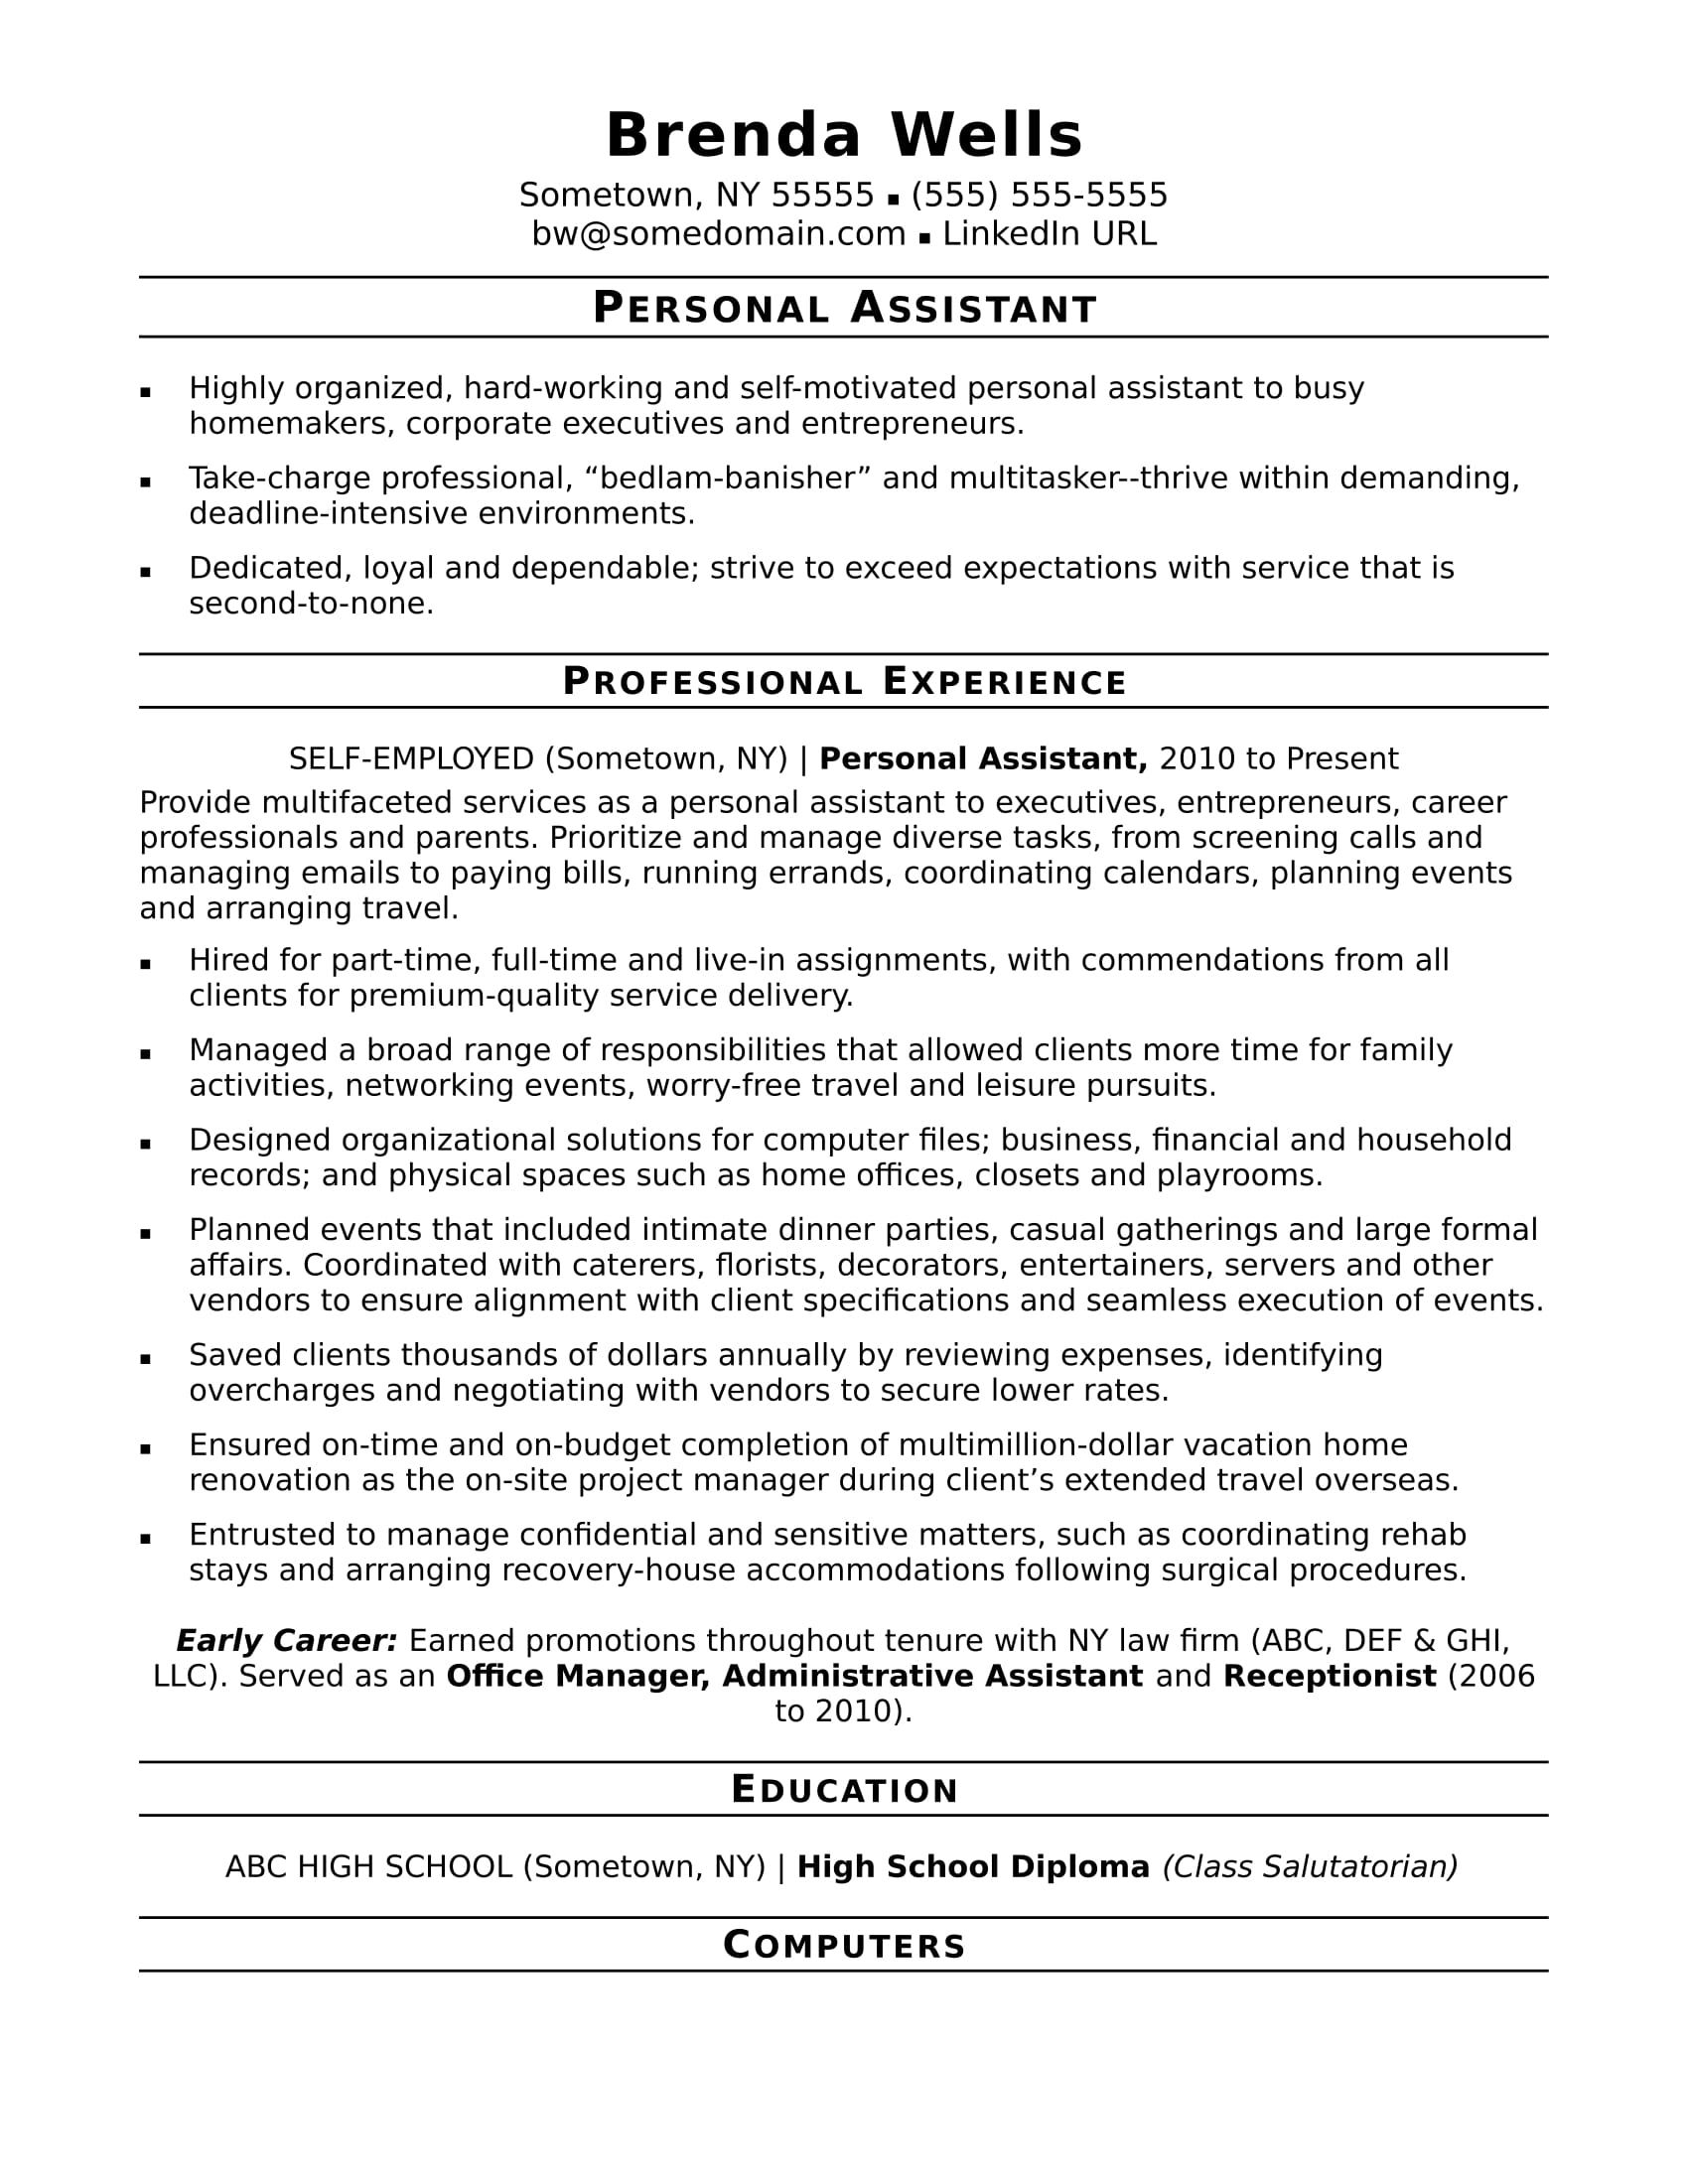 Personal Assistant Resume Sample Administrative Assistant Cover Letter Office Assistant Resume Resume Examples